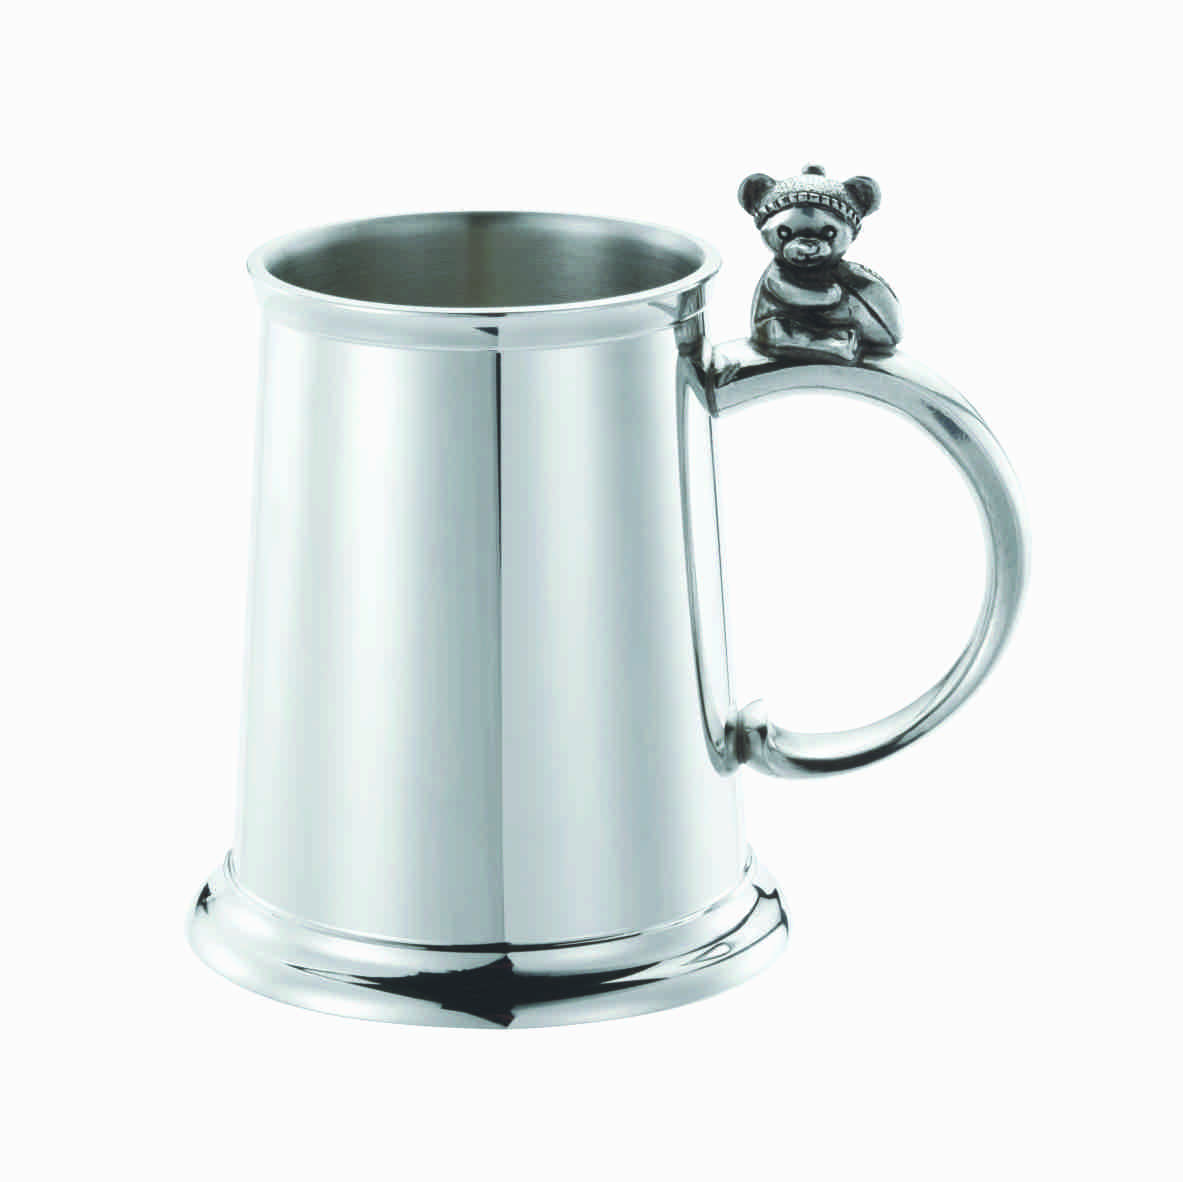 AFL TEDDY BEAR CHRISTENING BABY MUG - ROYAL SELANGOR